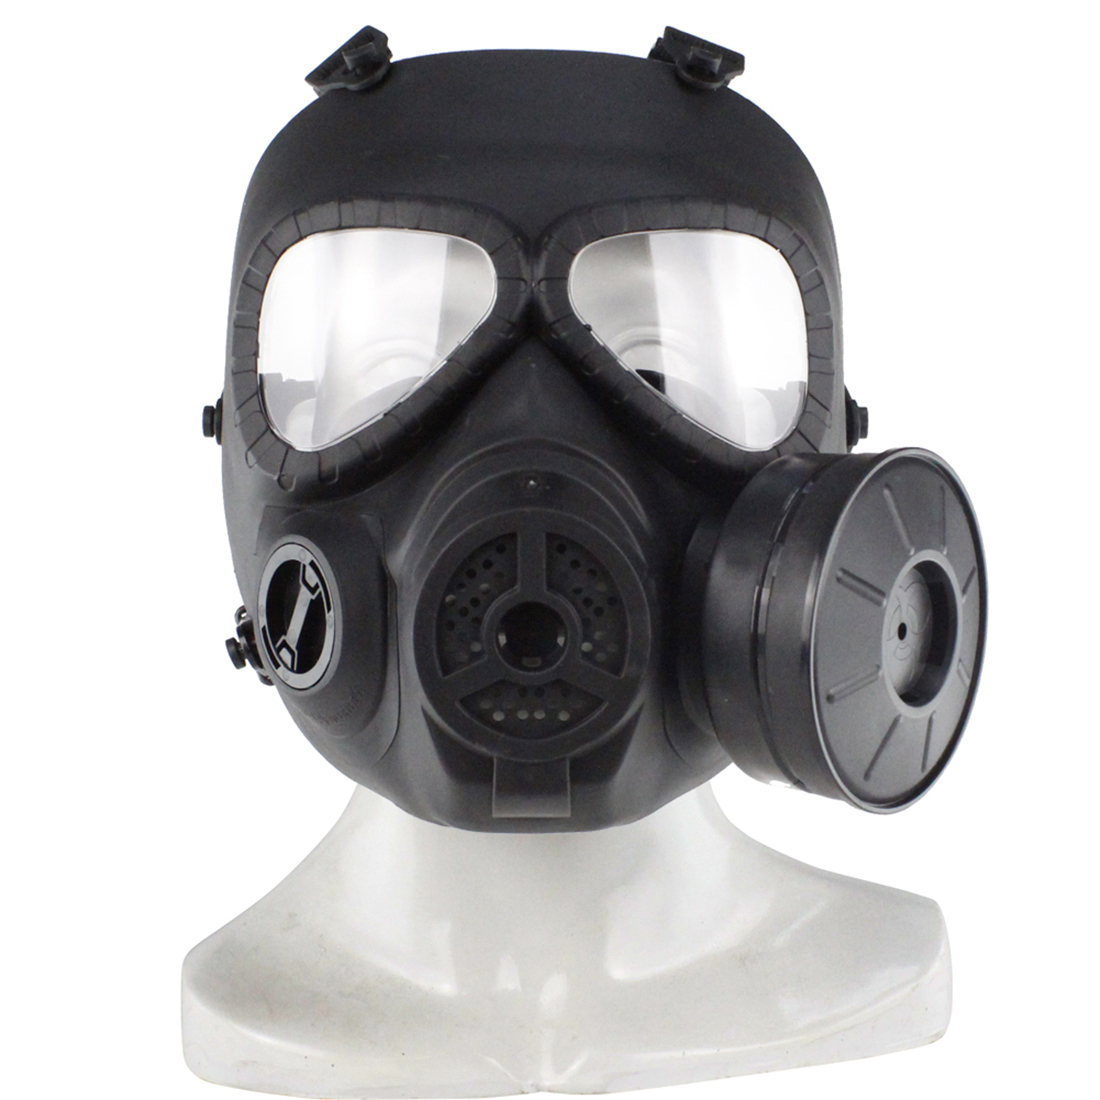 Creative Simulation Tactical Head Mask Full Face Respirator Single Canister Electric Ventilative Biochemical Gas Mask For Nerf/airsoft Outdoor Fun & Sports